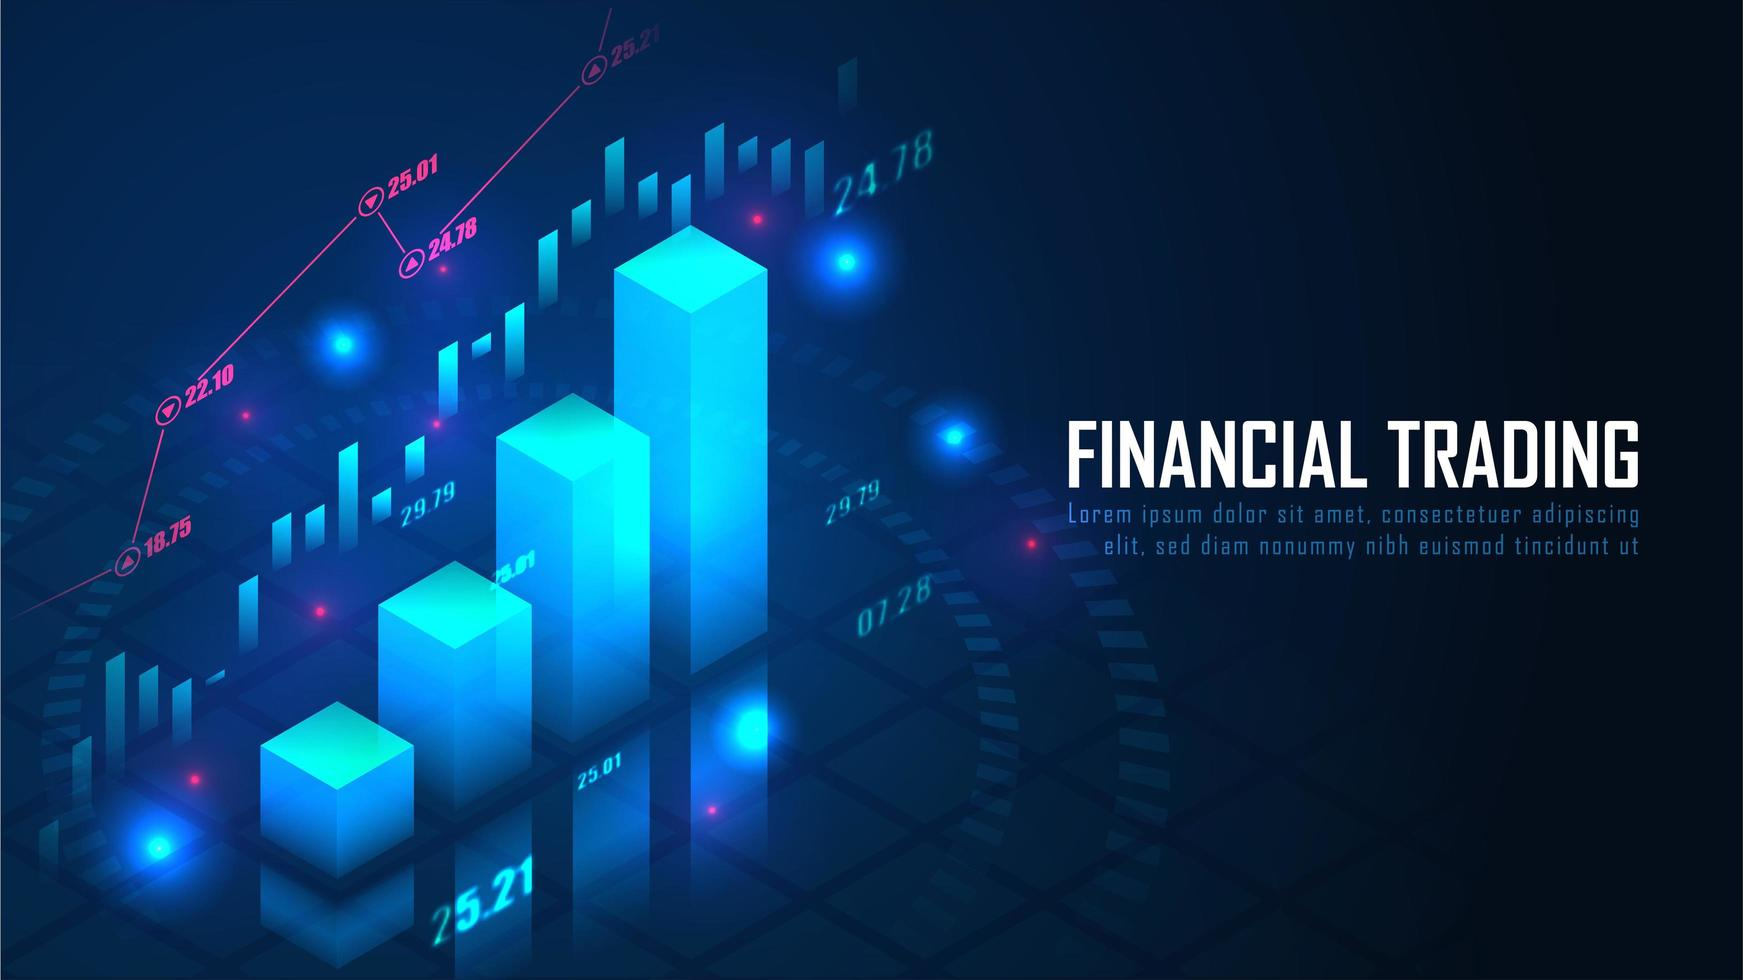 Isometric stock or forex trading graph vector